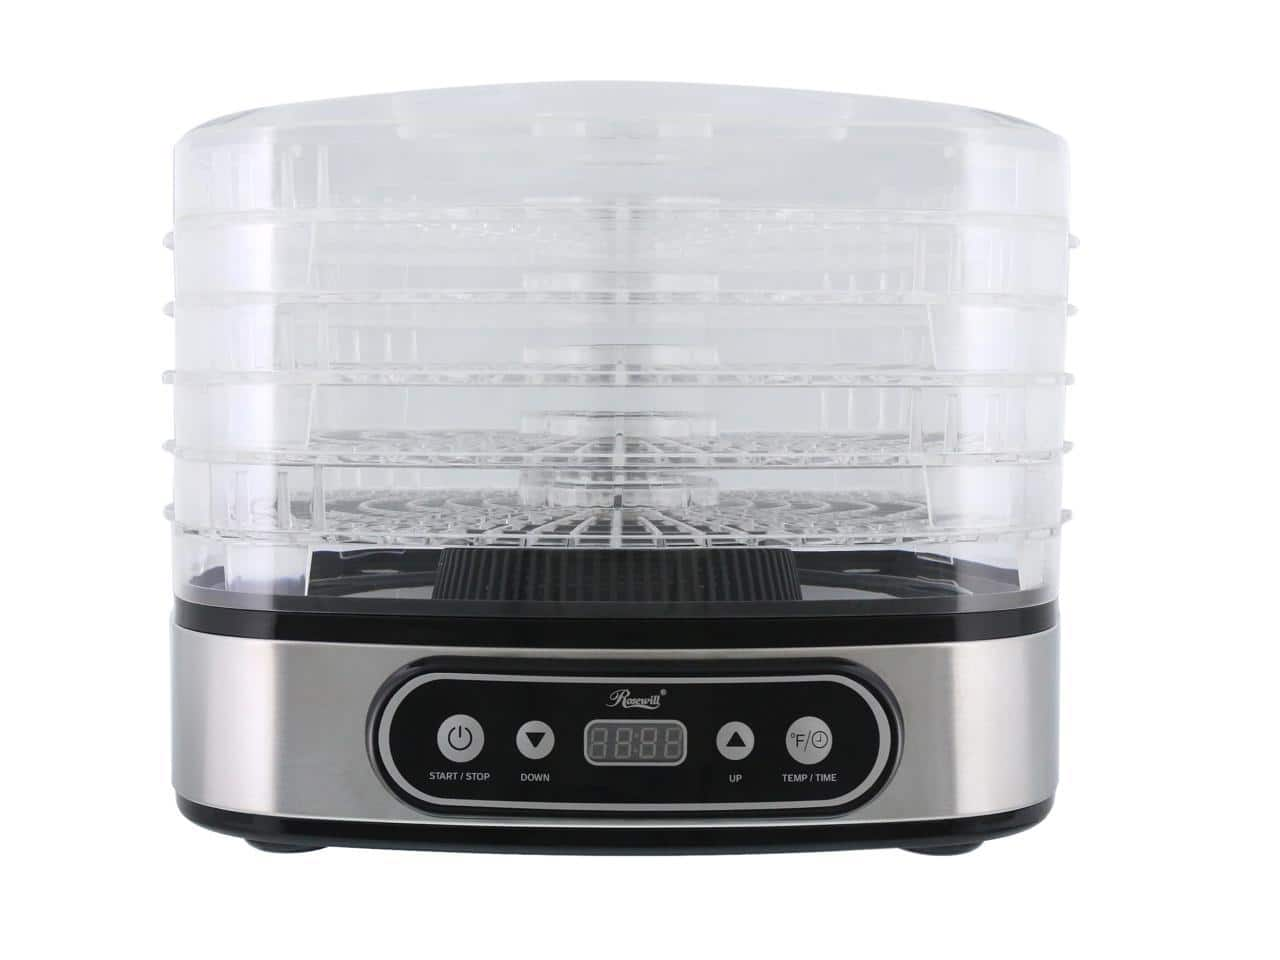 Rosewill RHFD-19001 Food Dehydrator Machine 5-Tray Stackable Dehydrating Racks with Adjustable Height $29.99